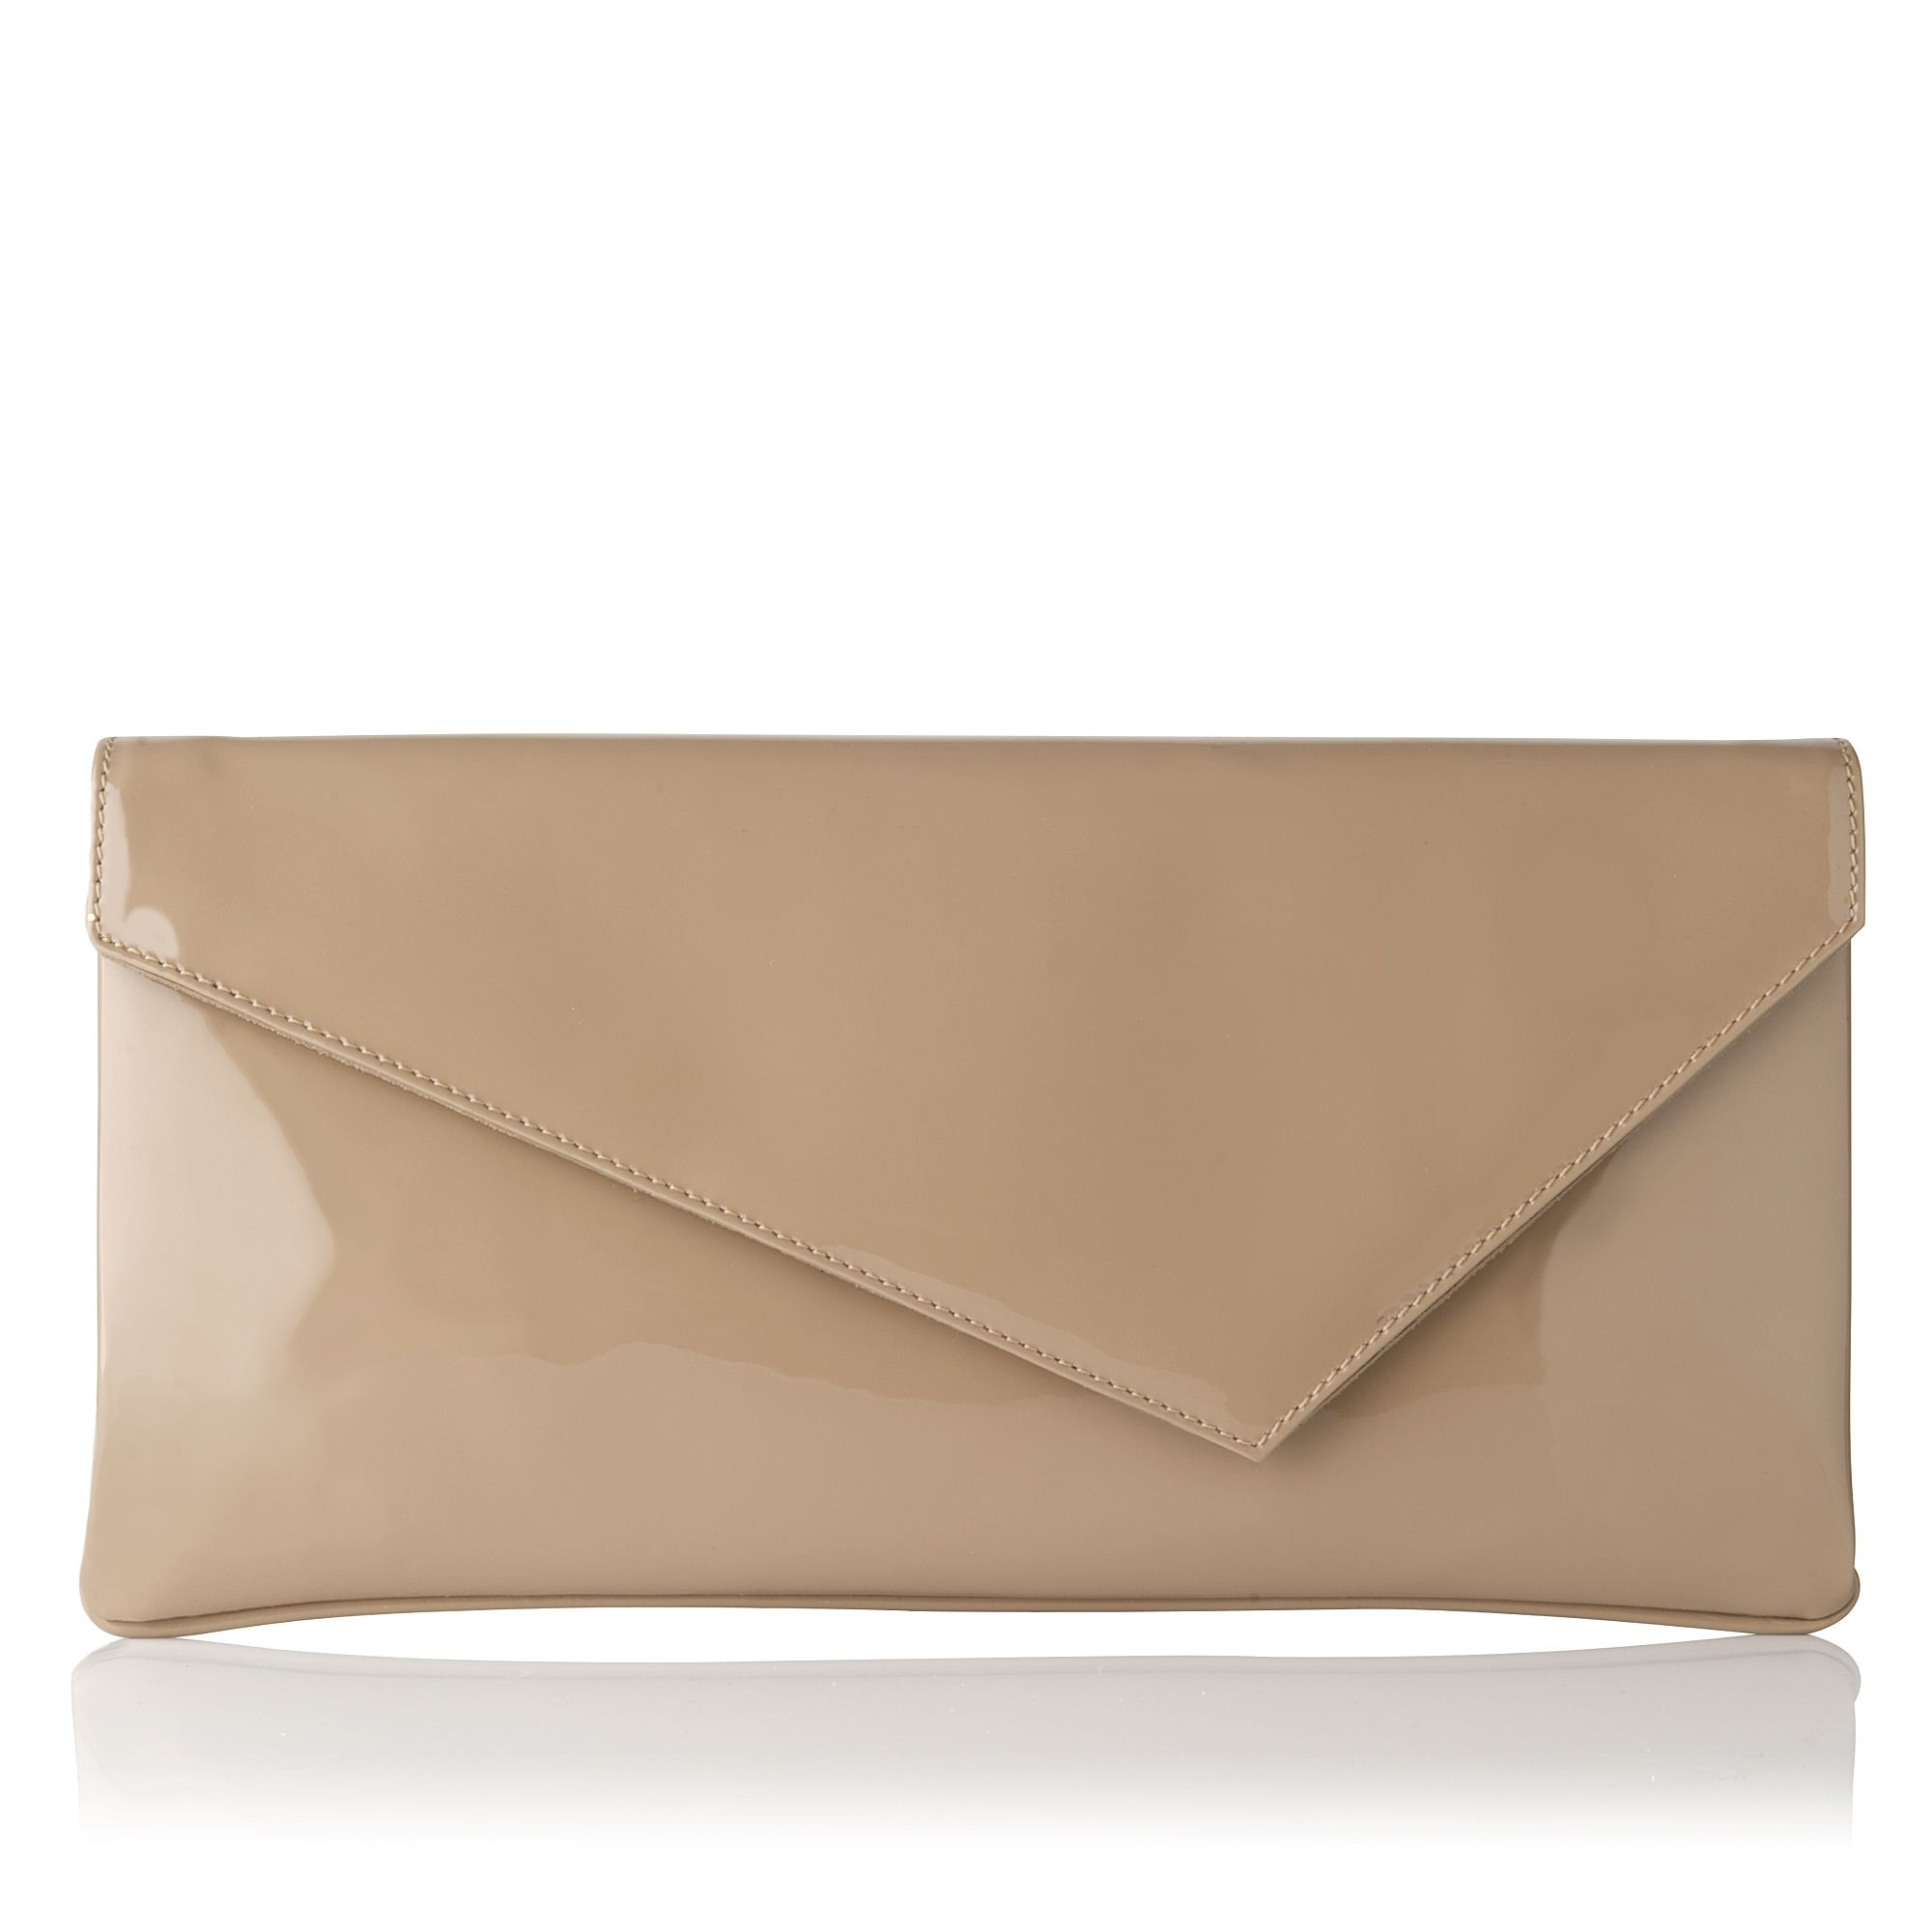 L leonie taupe patent assymetric clutch bag in beige taupe lyst - Beige slaapkamer taupe ...